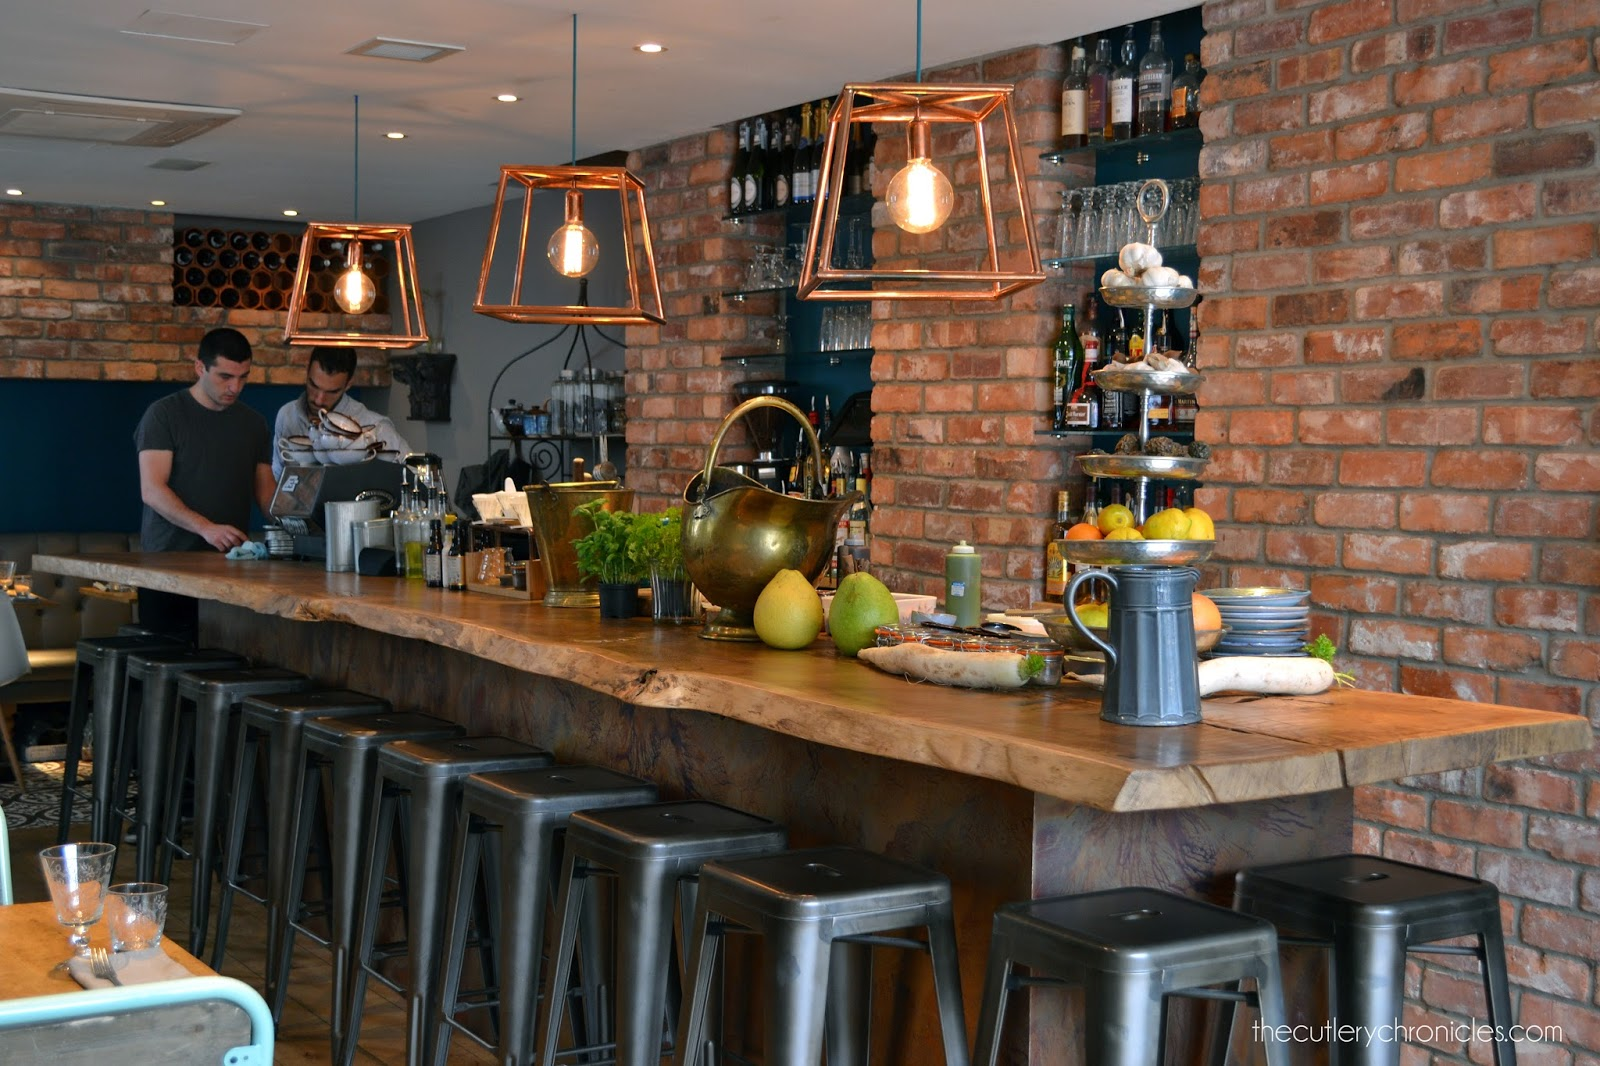 The Cutlery Chronicles Zumbura Clapham Review